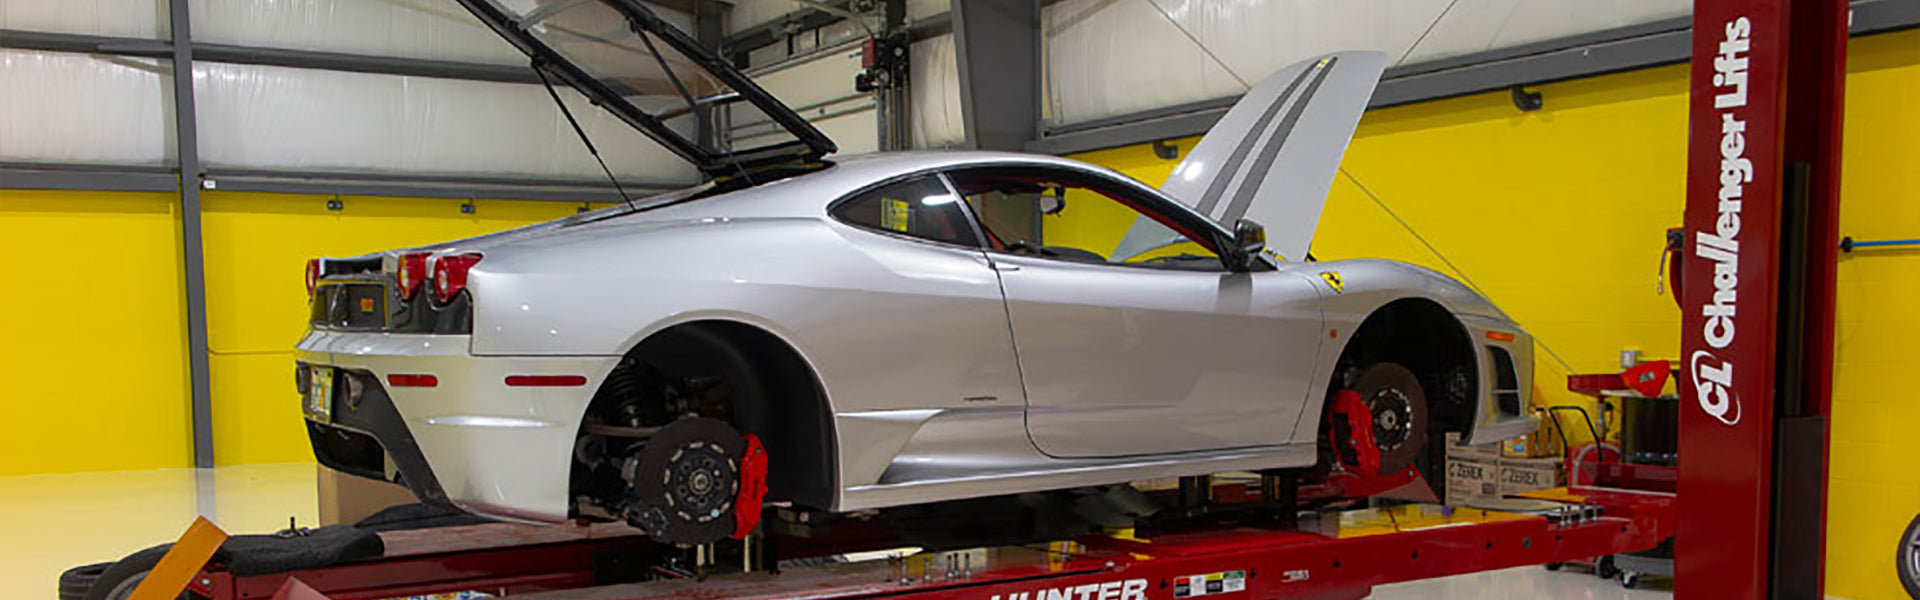 Pre-Purchase Inspection for Exotic Super Sports Cars and Luxury Vehicles